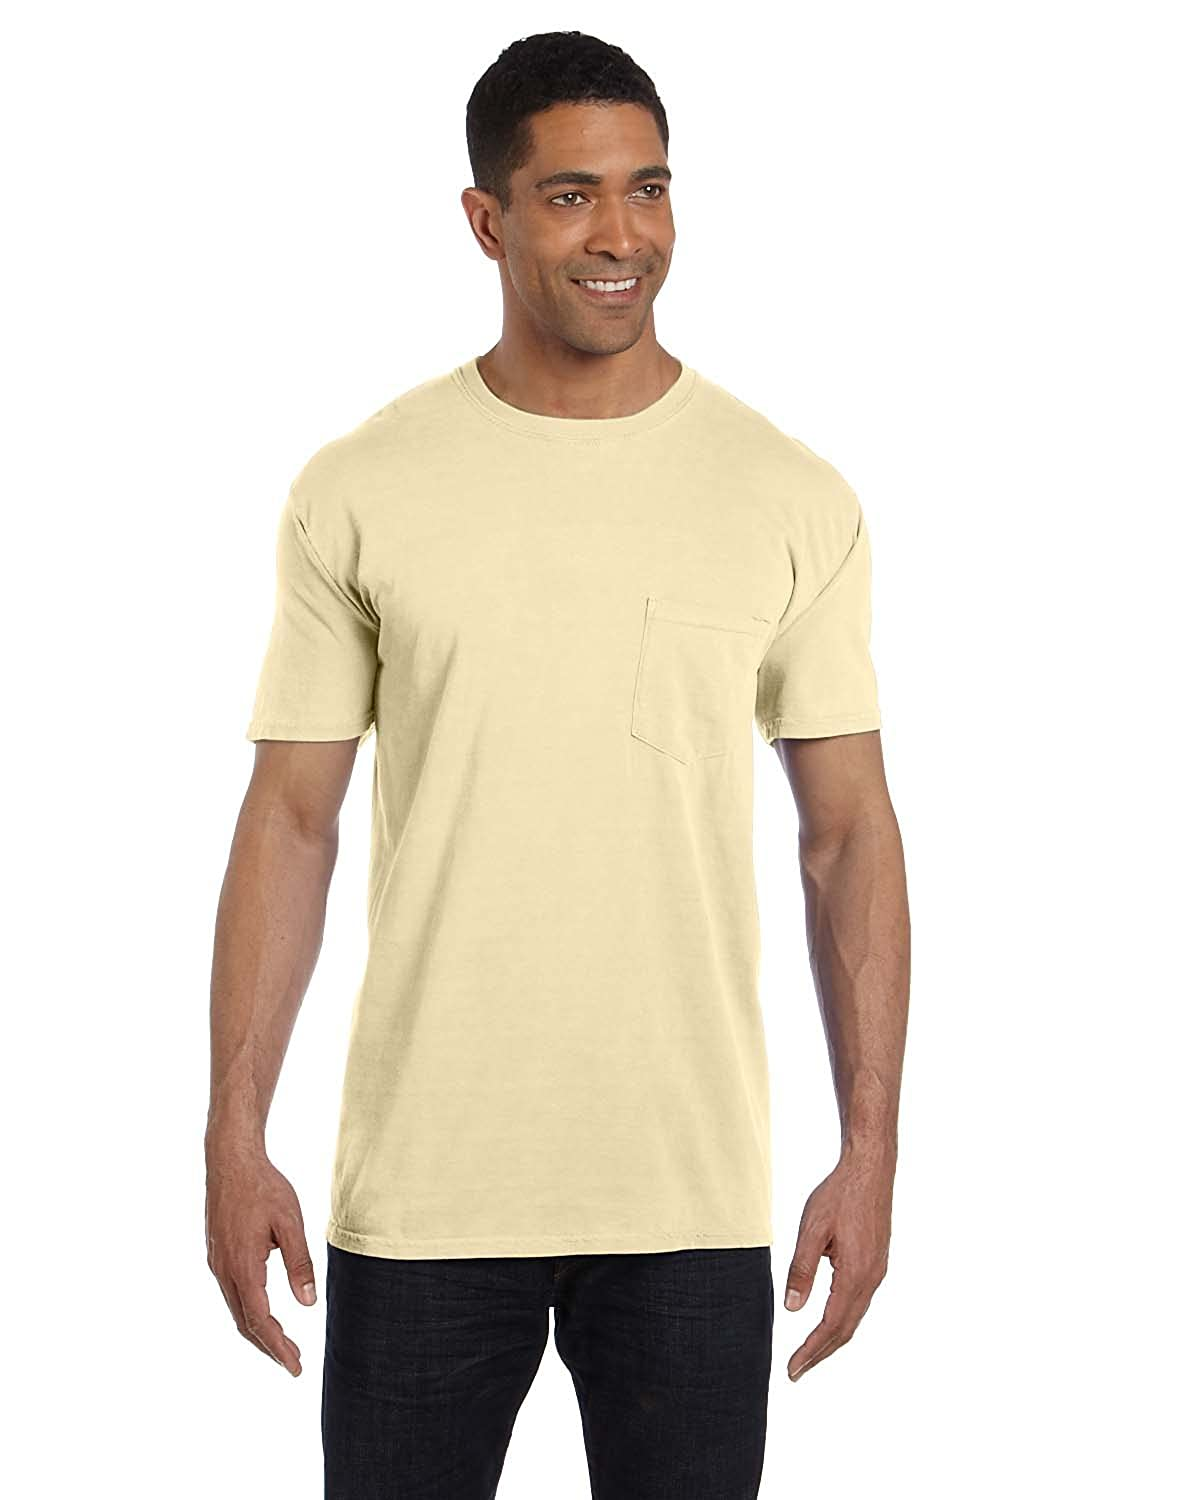 this your request order comforter tee summer colors comfort for next crimson shirt t portfolio shirts camp m bar color item dock travis